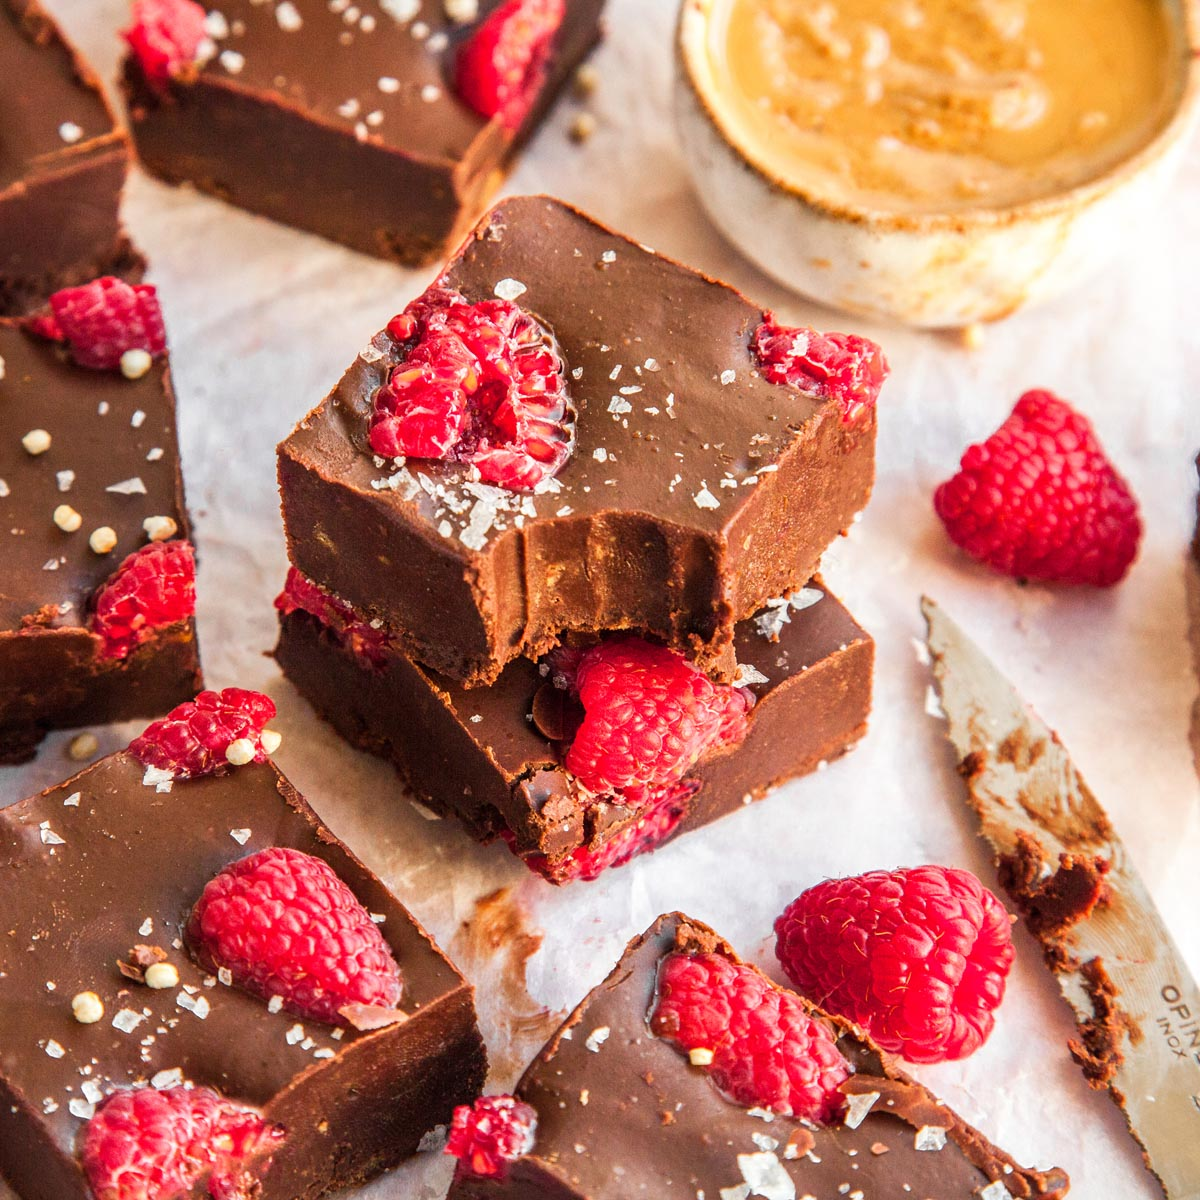 Chocolate peanut butter and raspberry fudge